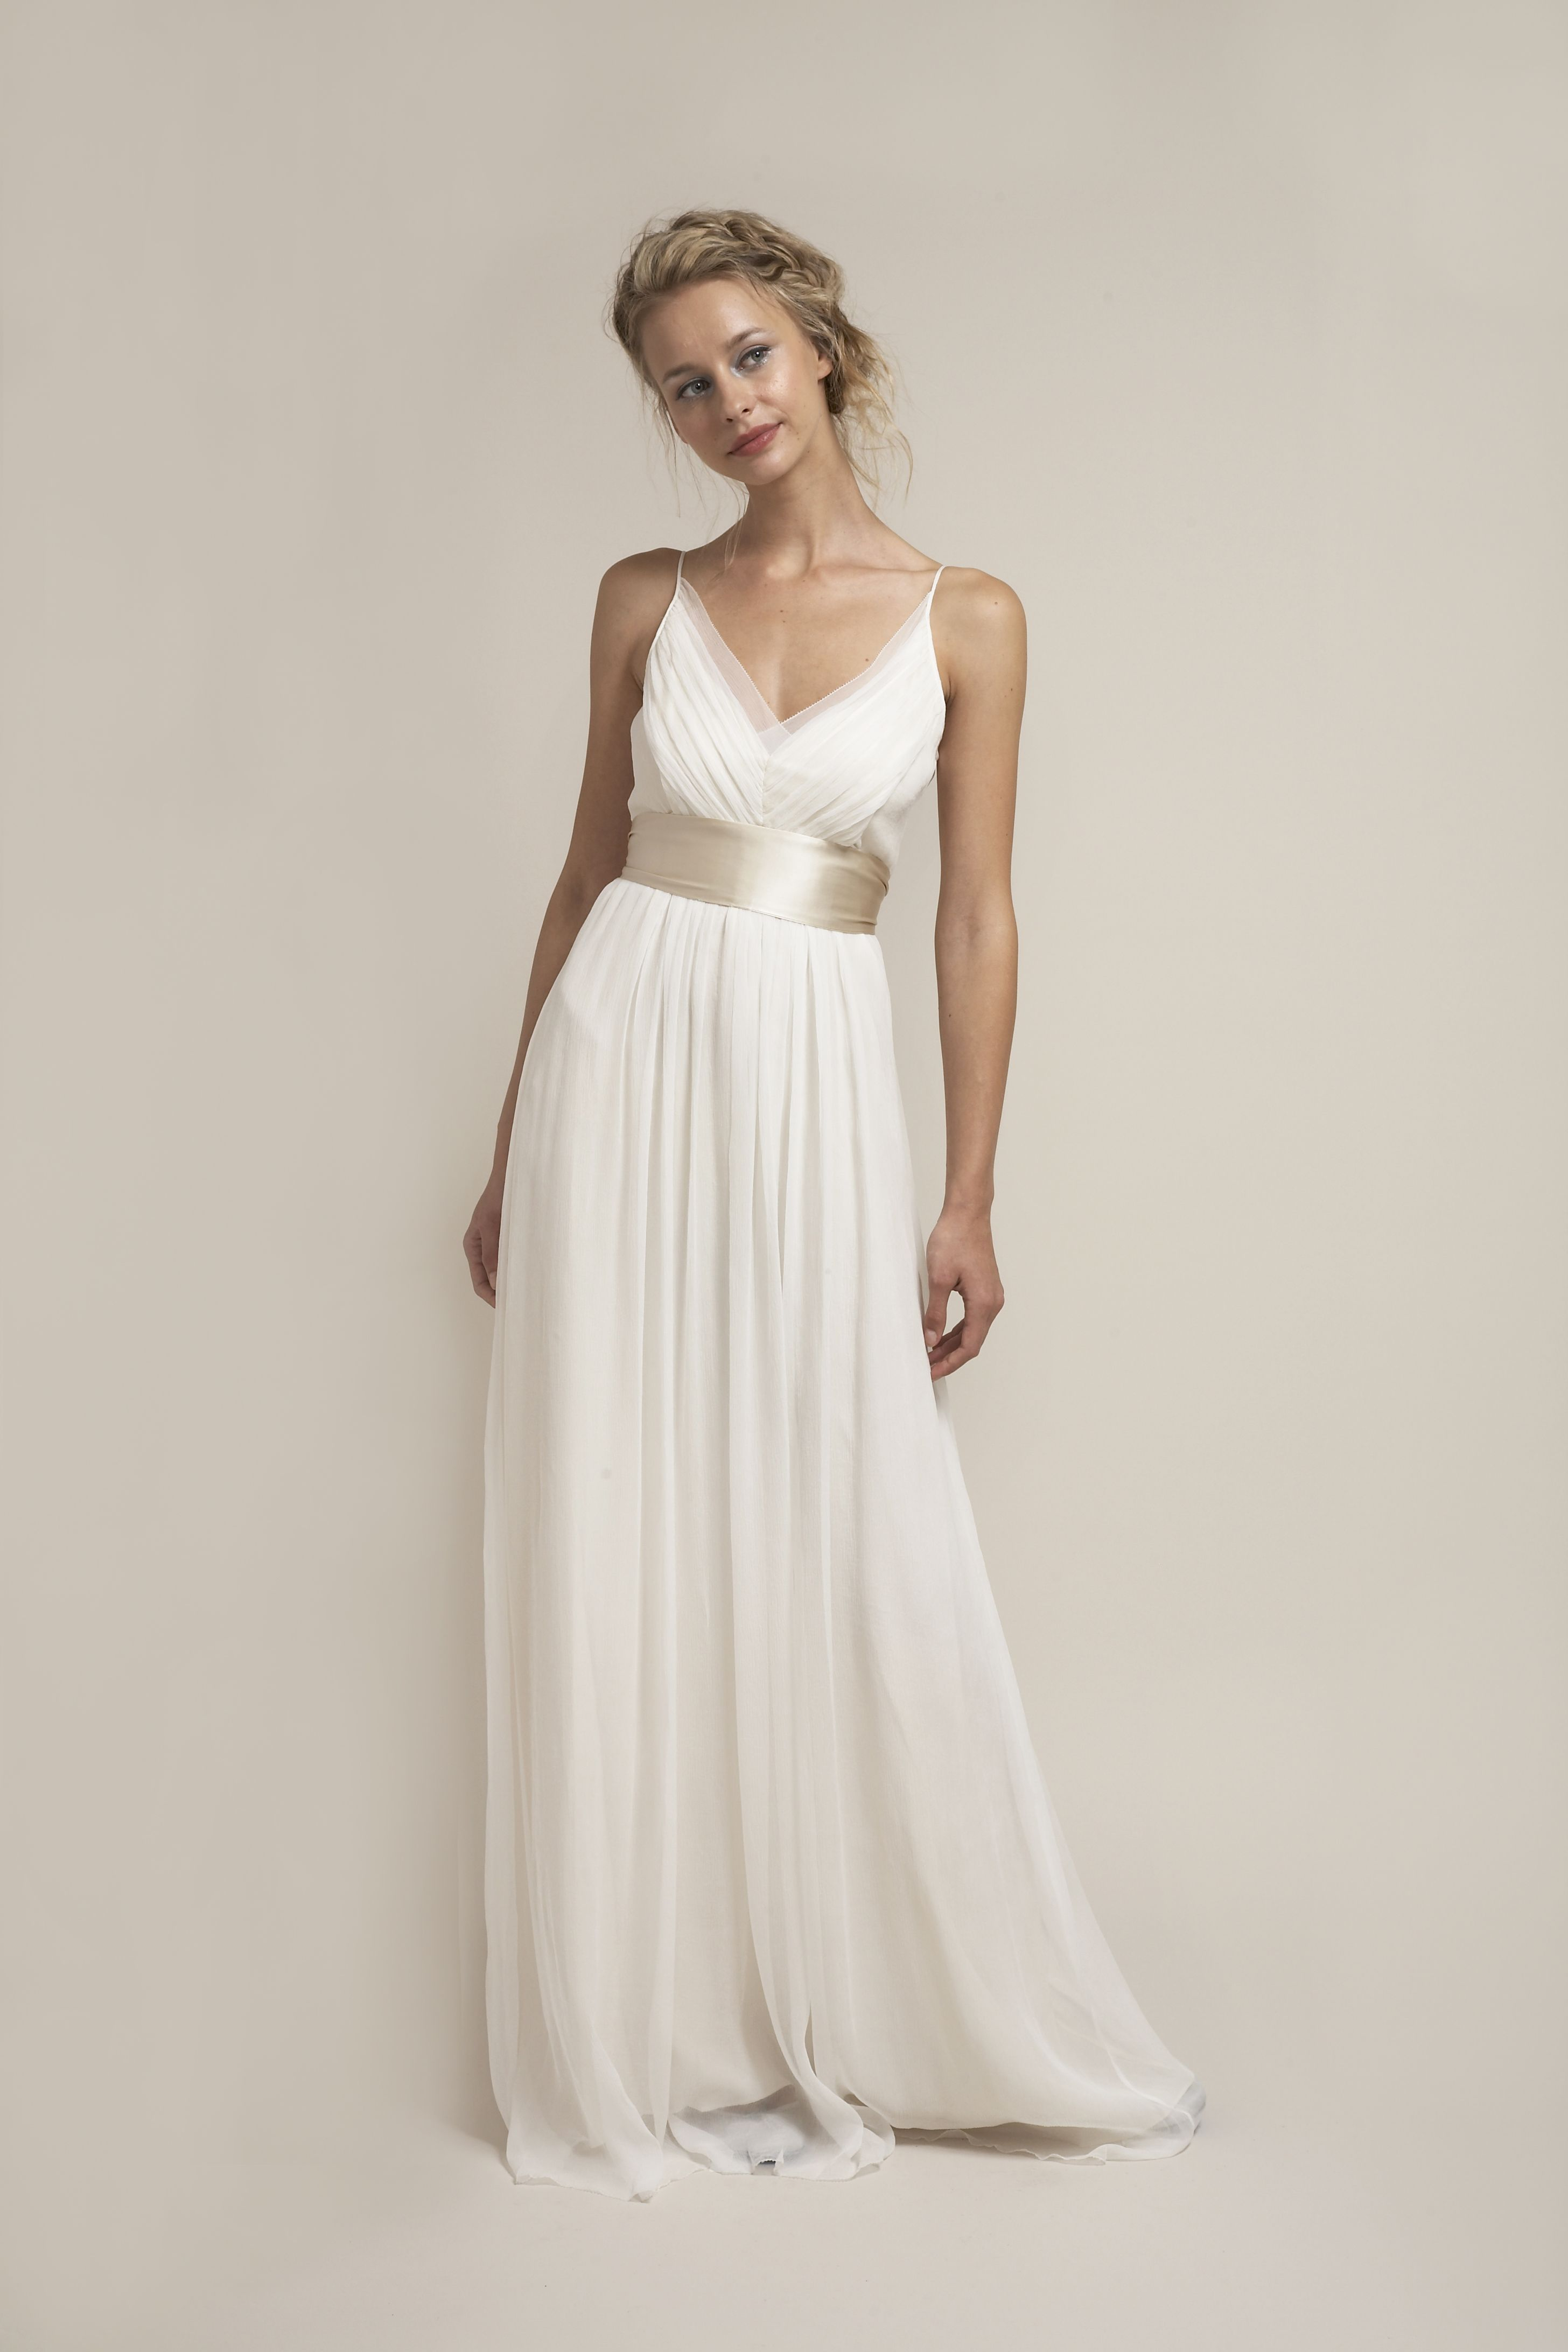 Hb6622 Effortless And Simply Stunning Wedding Dress Stunning Wedding Dresses Wedding Dresses Wedding Dress Types